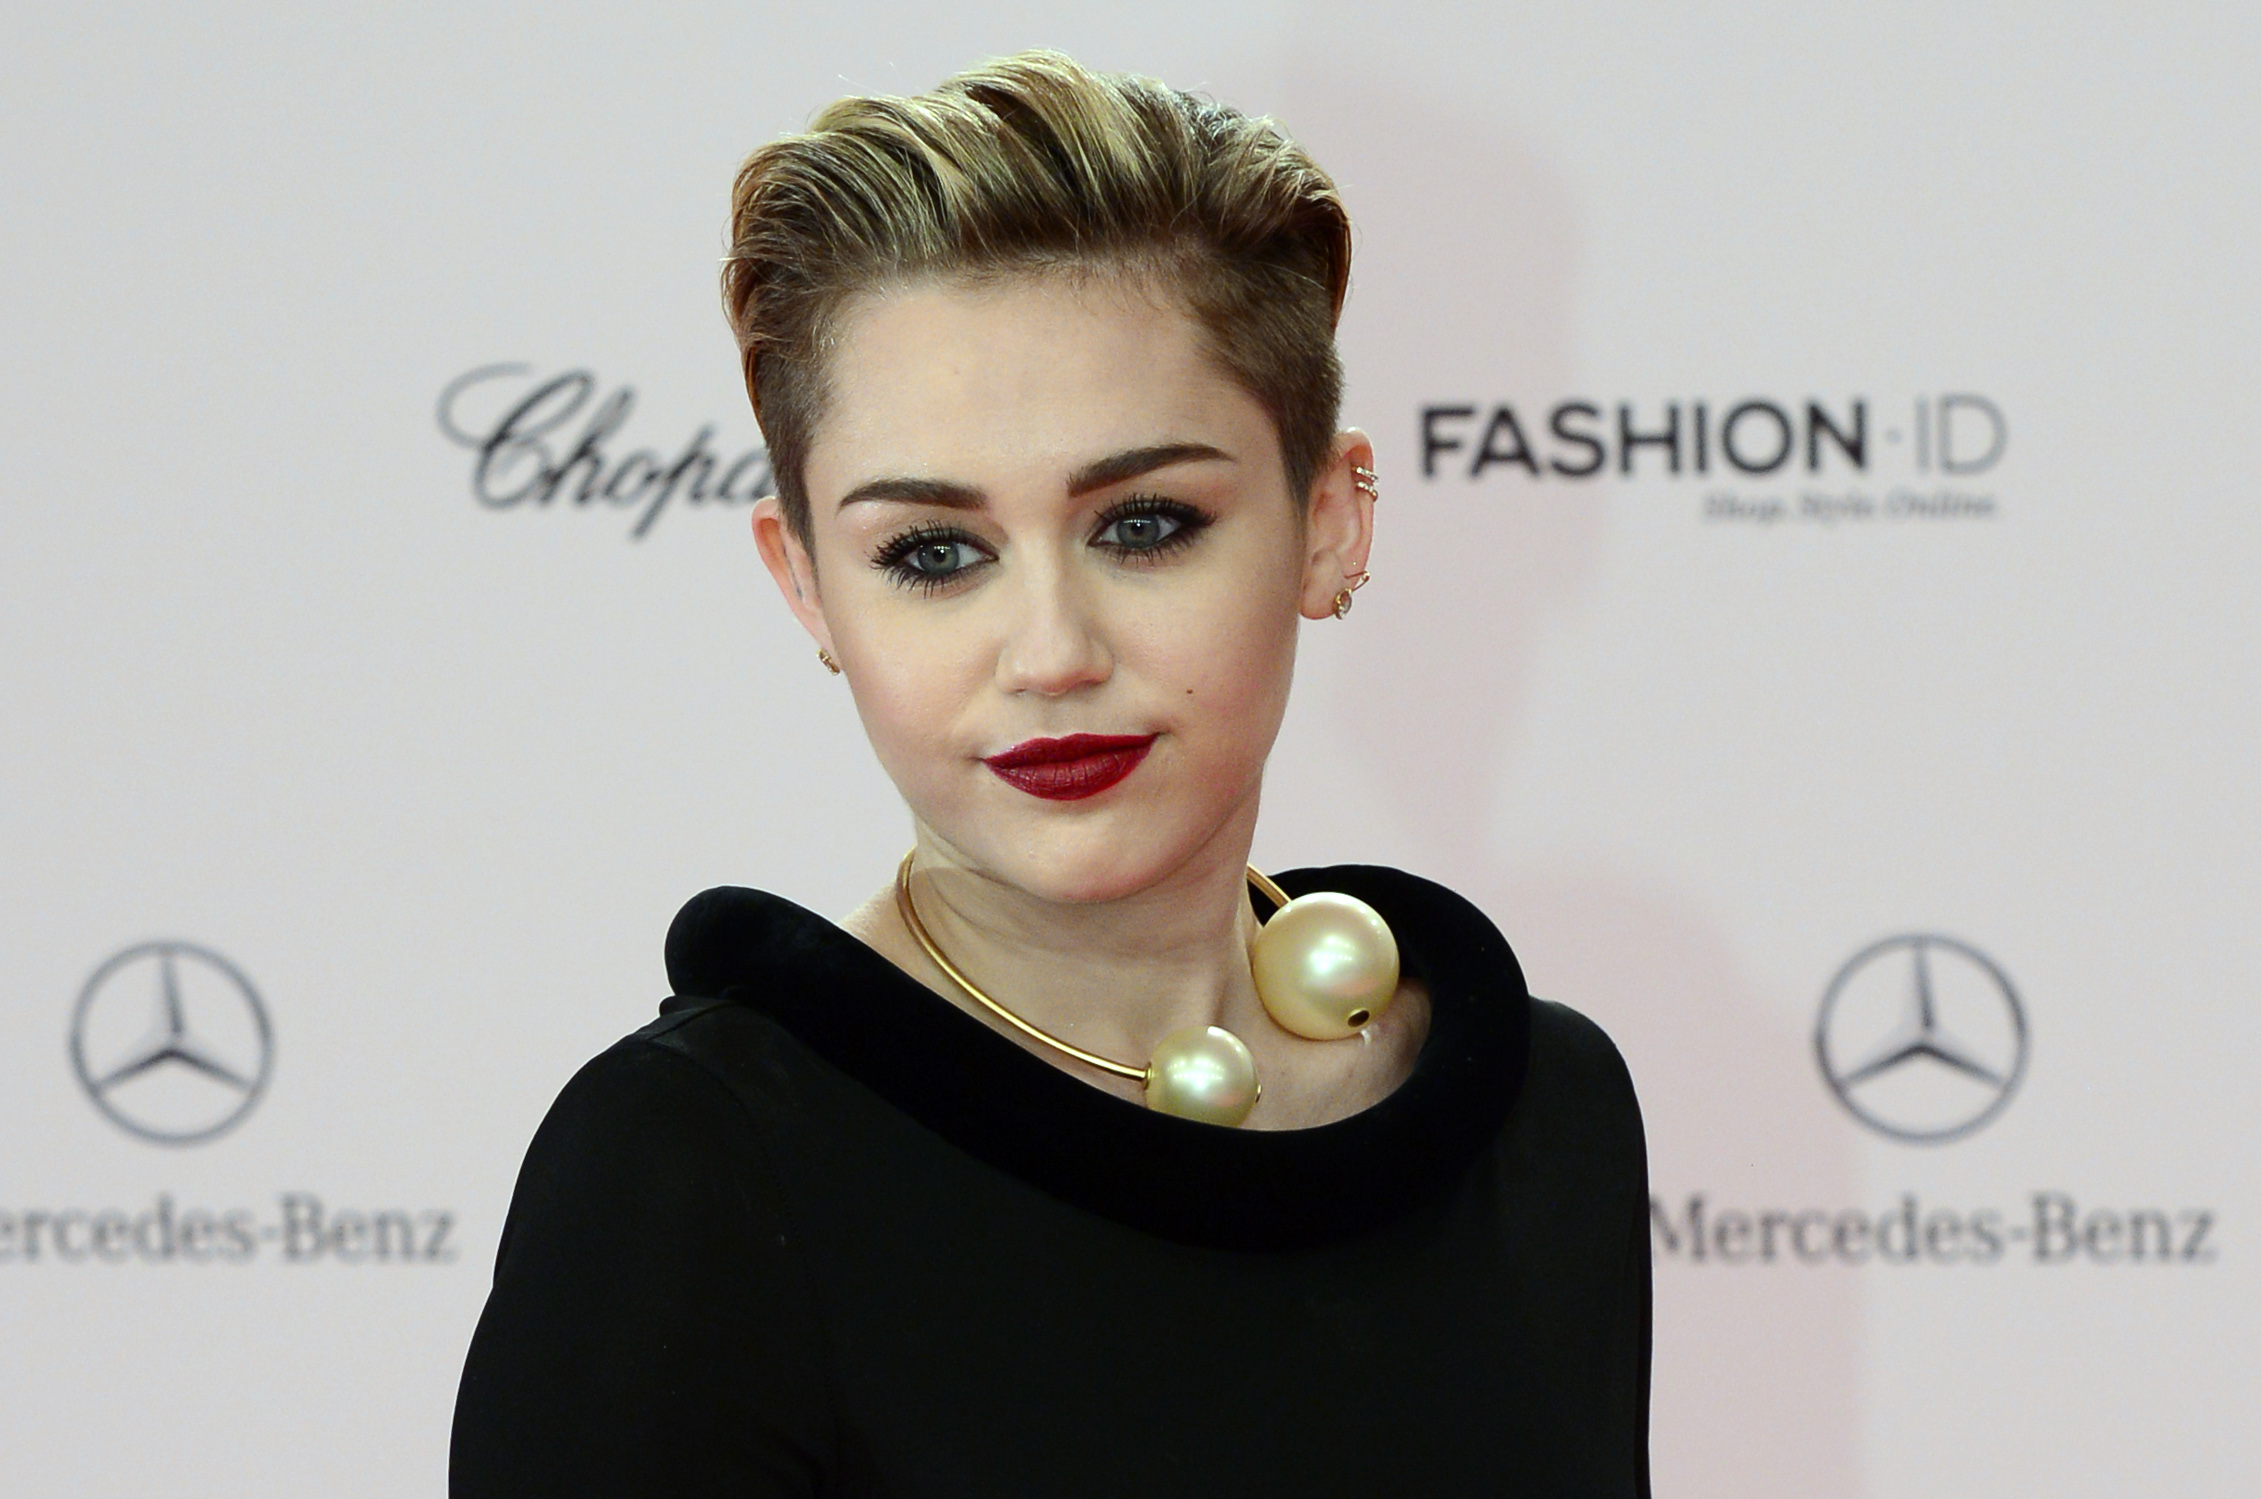 Miley Cyrus Opens Up About Her Sexuality Its Just One Of Many